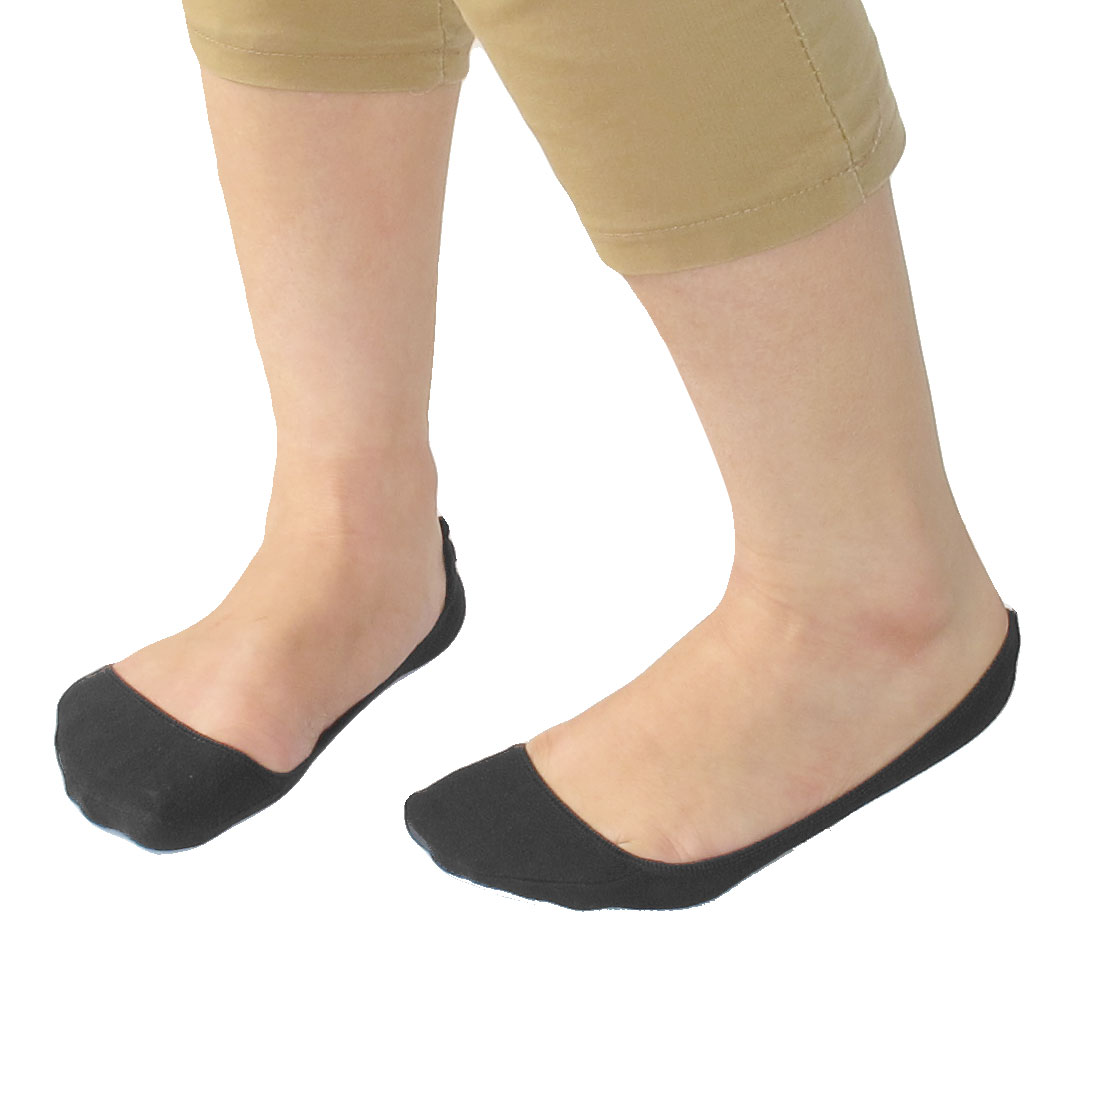 Pair Black Low Cut Elastic Cuff Boat Socks for Women